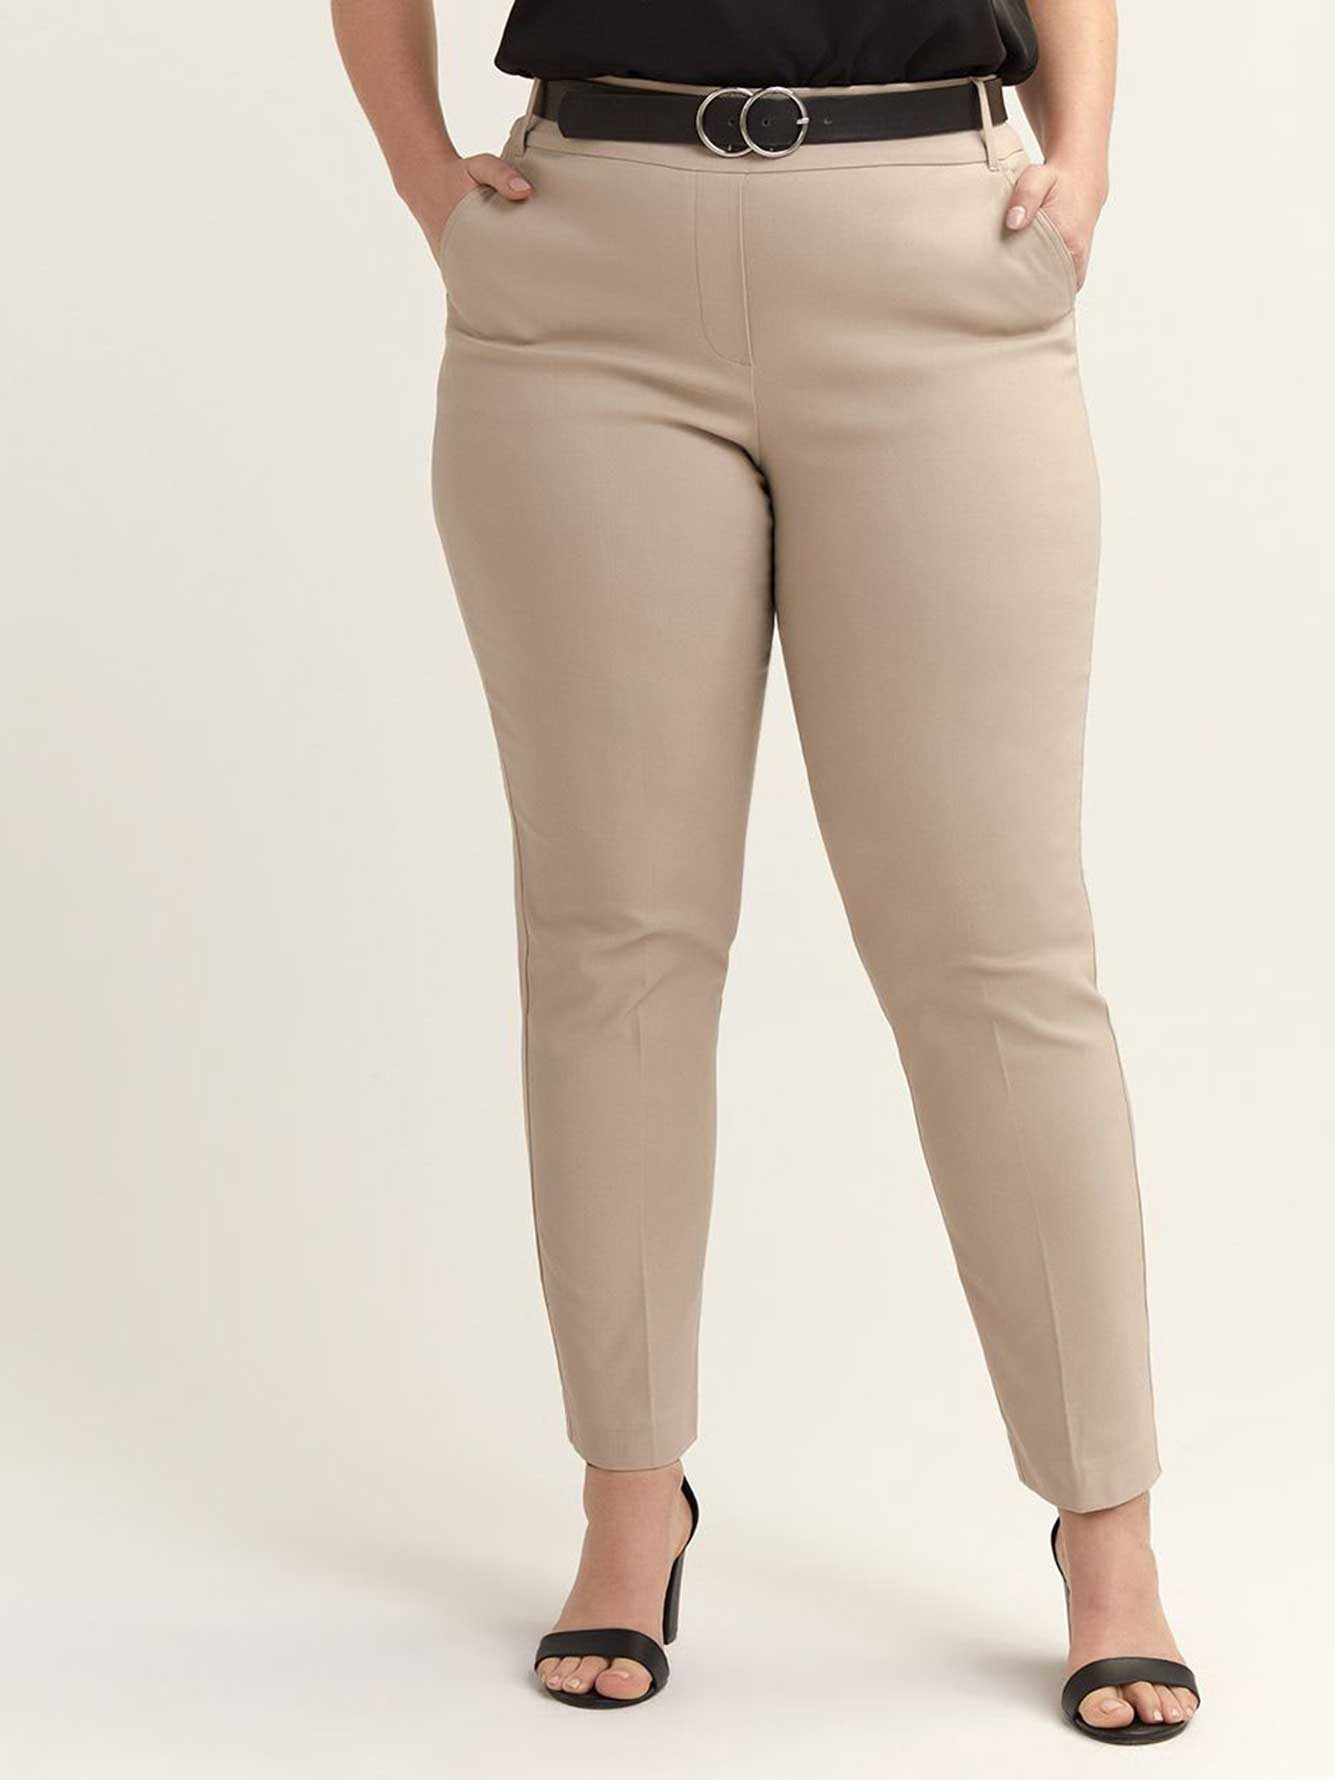 Petite - Savvy Soft Touch Straight Leg Pant - In Every Story